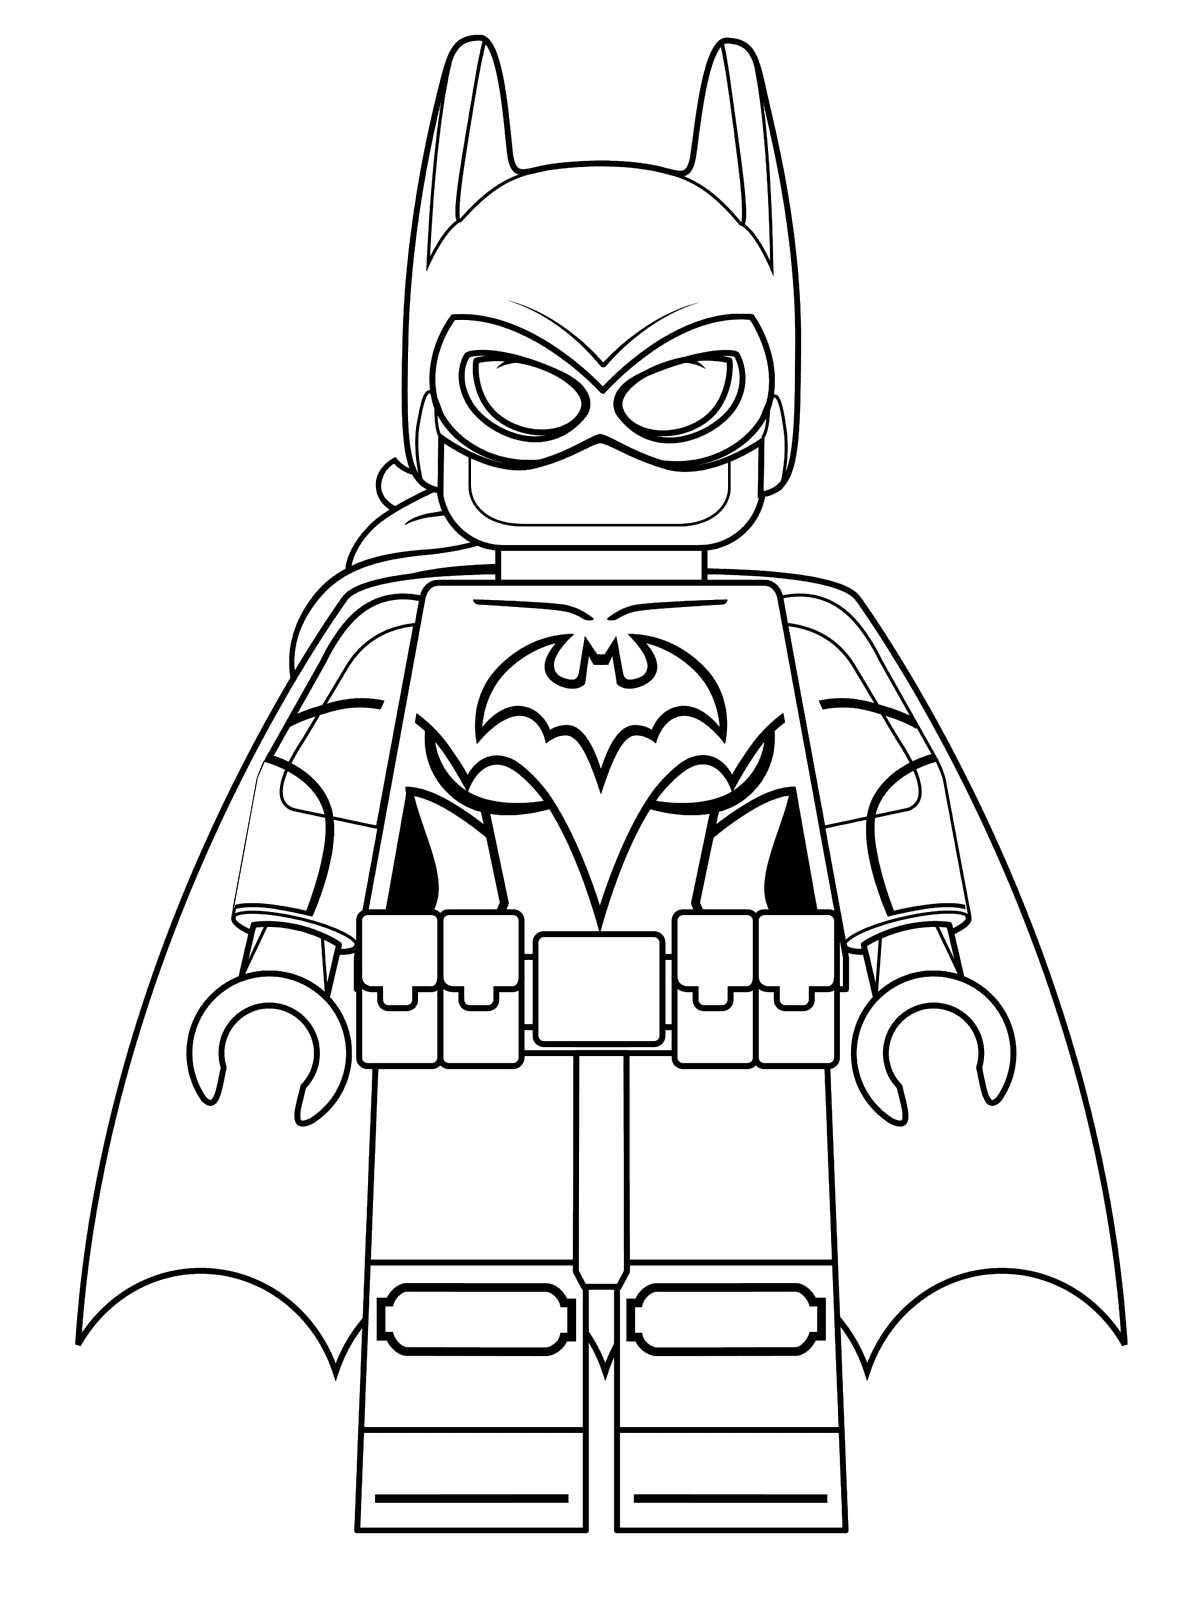 Lego batman coloring pages best coloring pages for kids for Lego coloring pages to print free